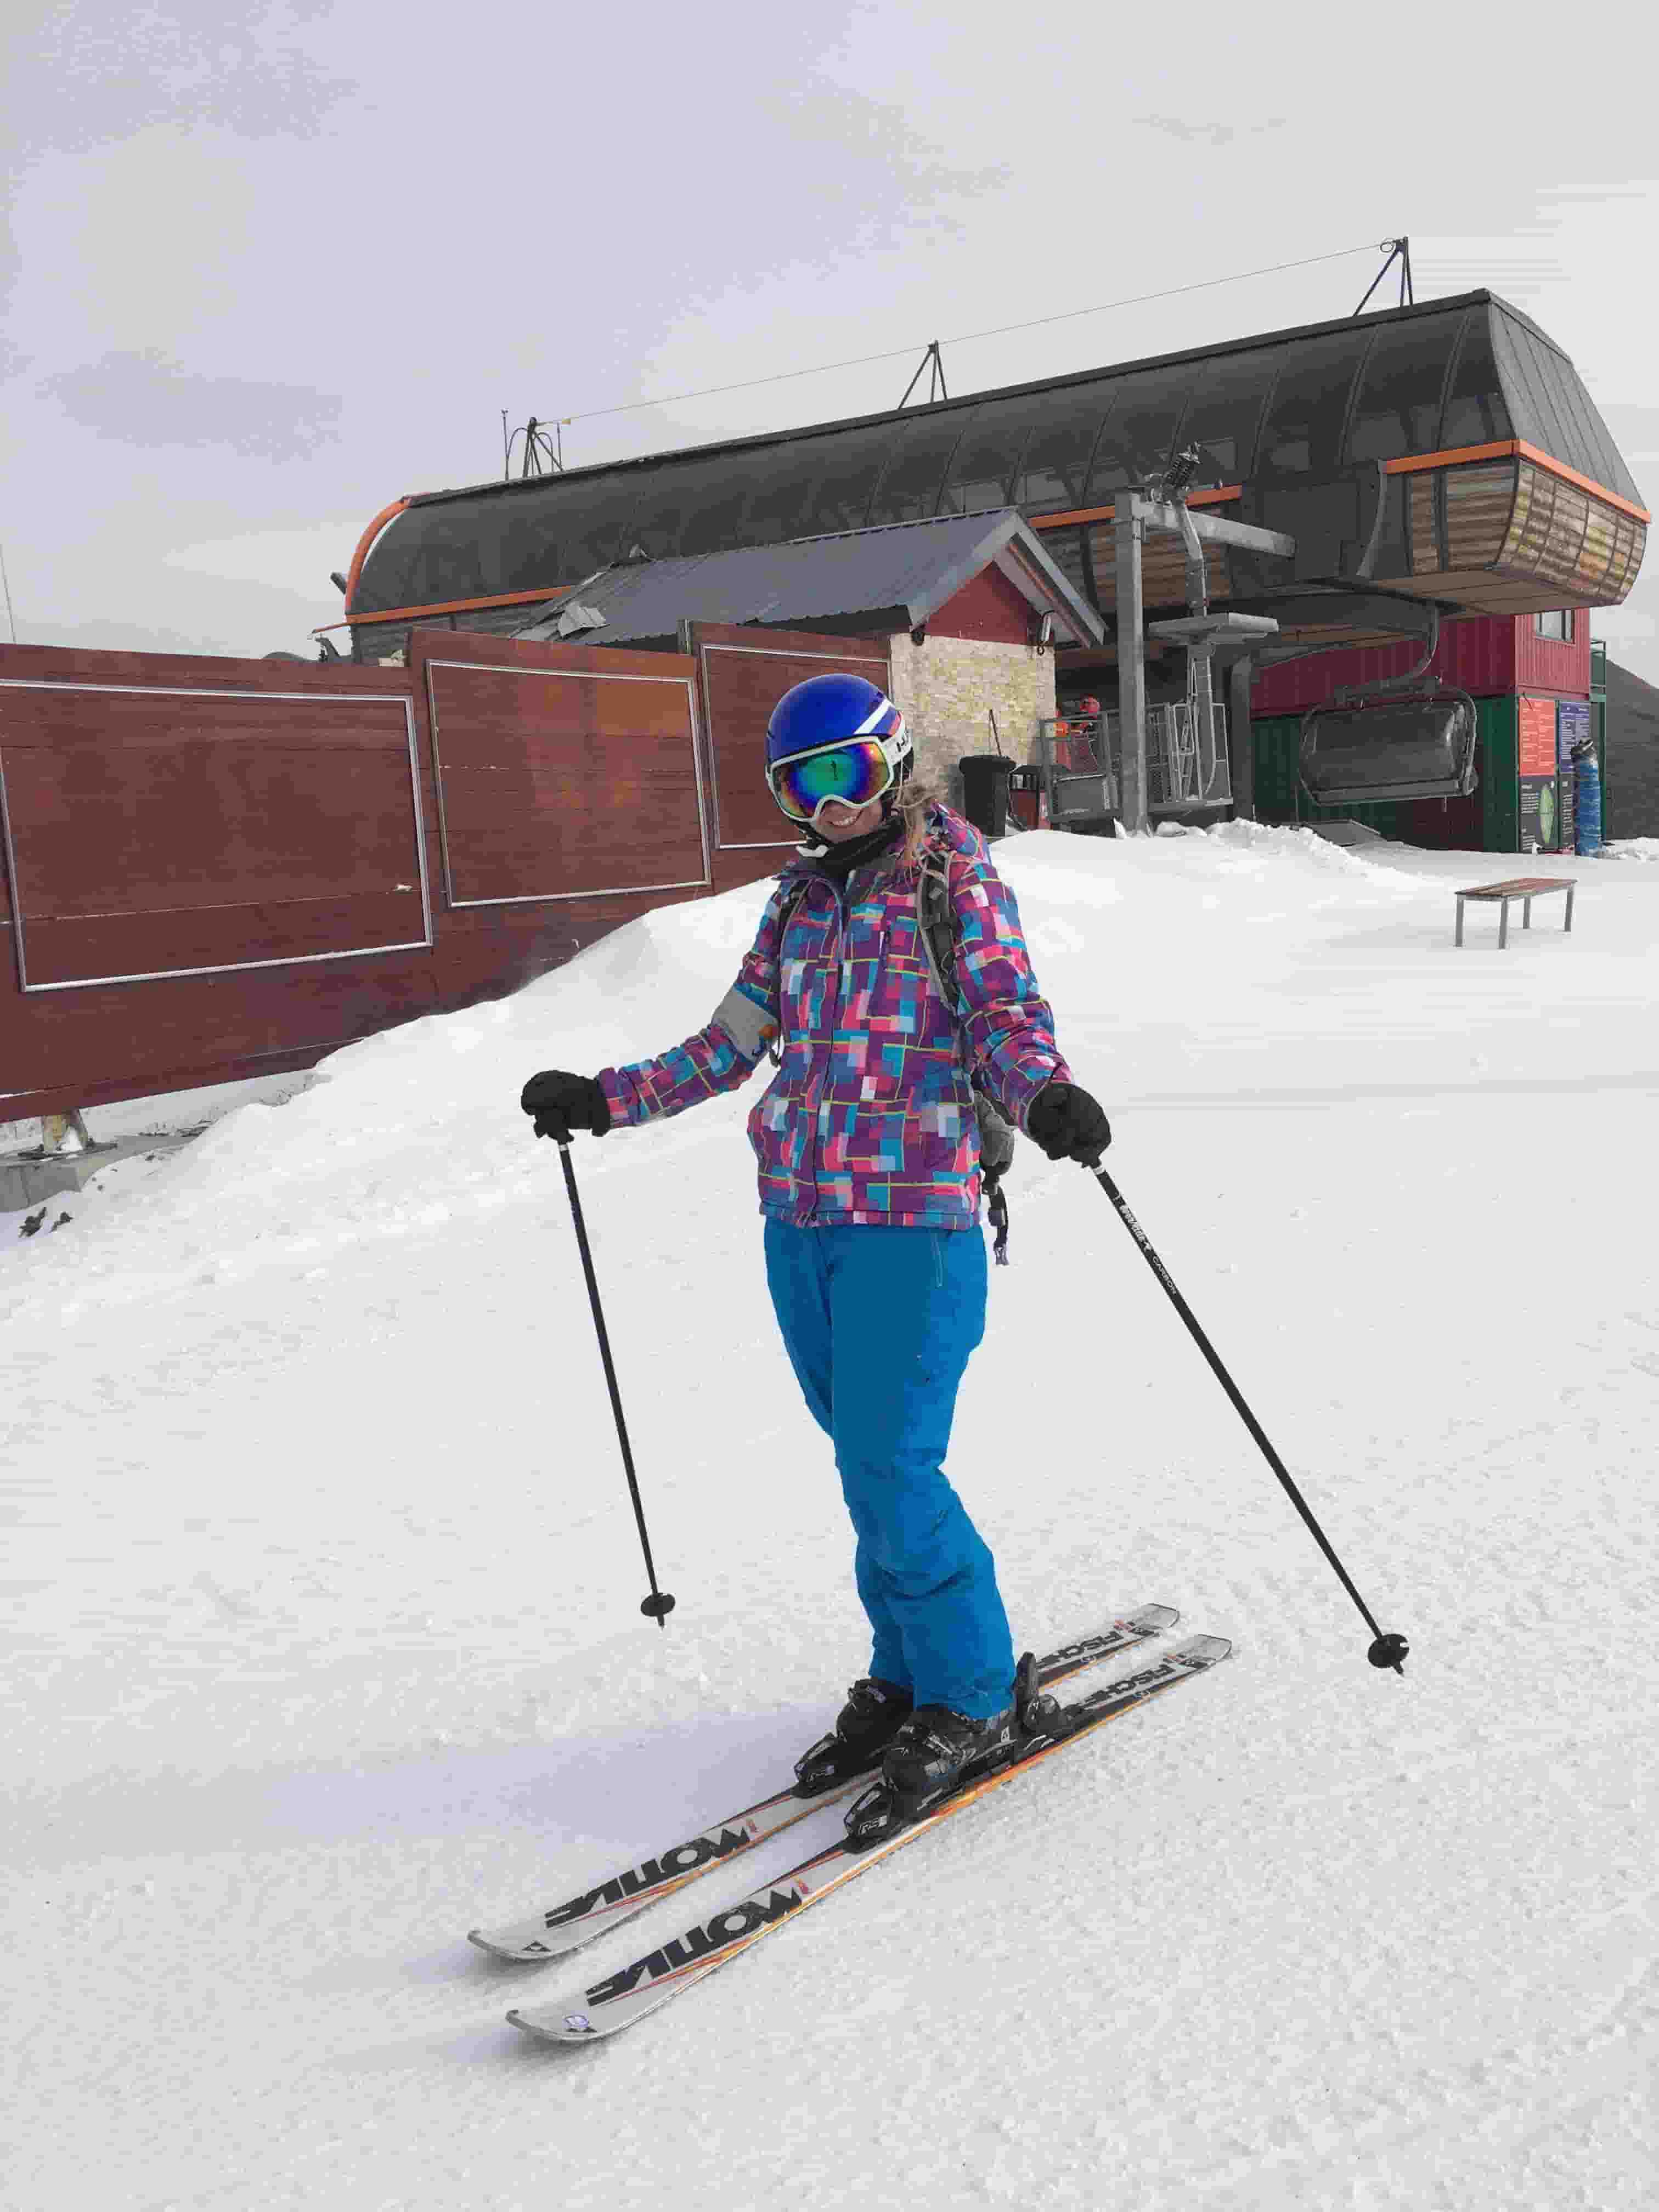 Skiing in China: LTL Student Indie on the slopes